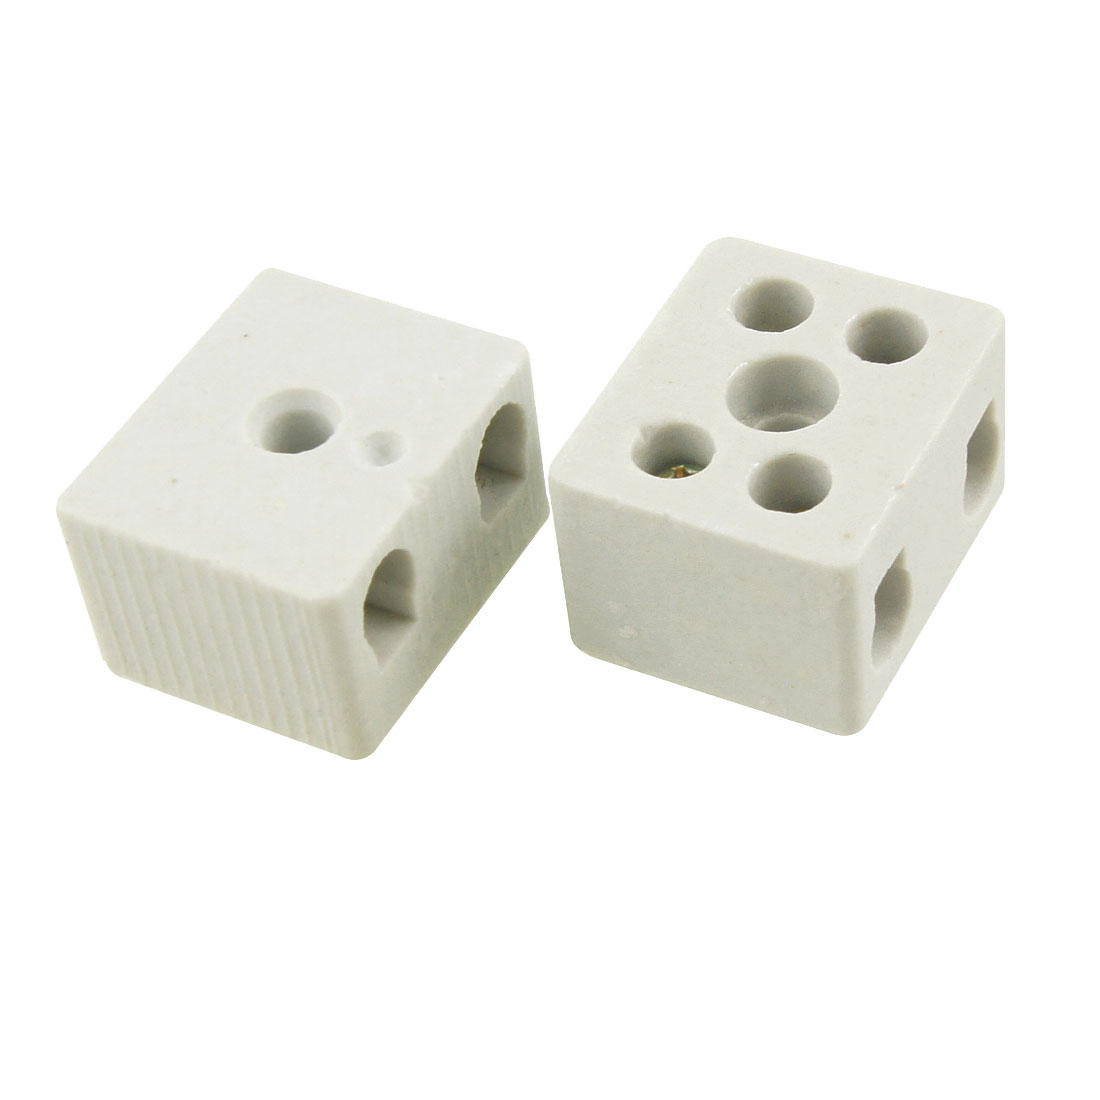 2 Pcs Wire Connector 2 Position Dual Row Ceramic Terminal Block 20A